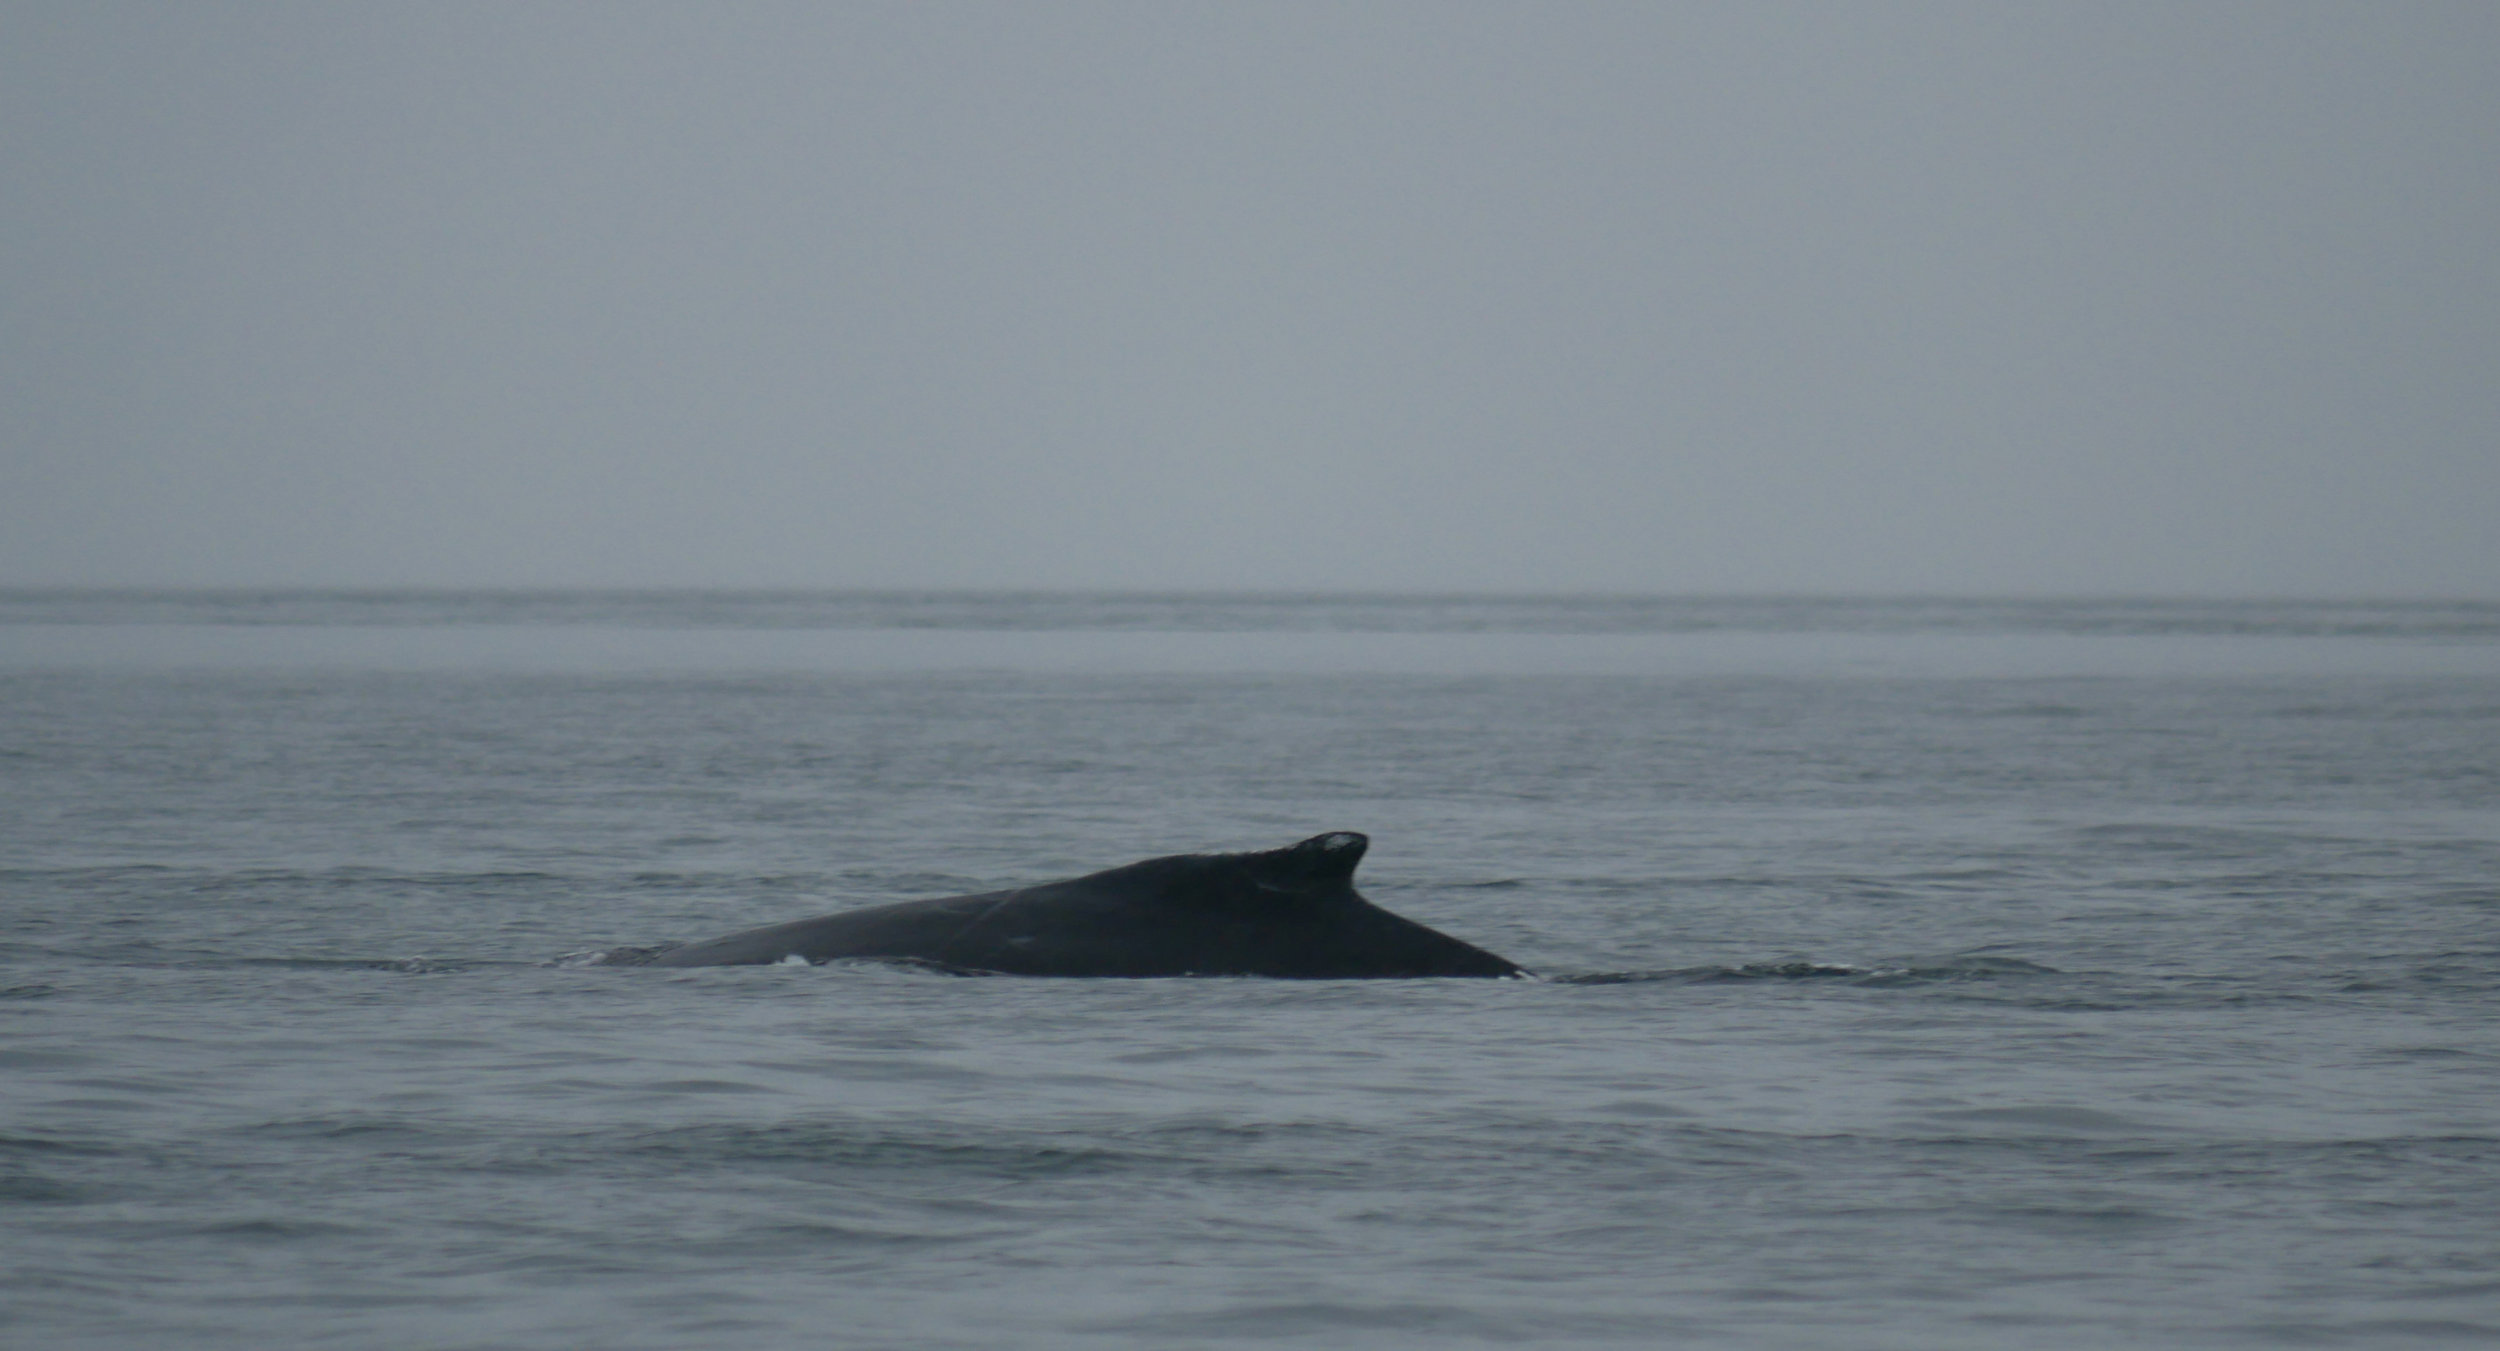 Another great look at the ID spot on Windy's dorsal. Photo by Val Watson.